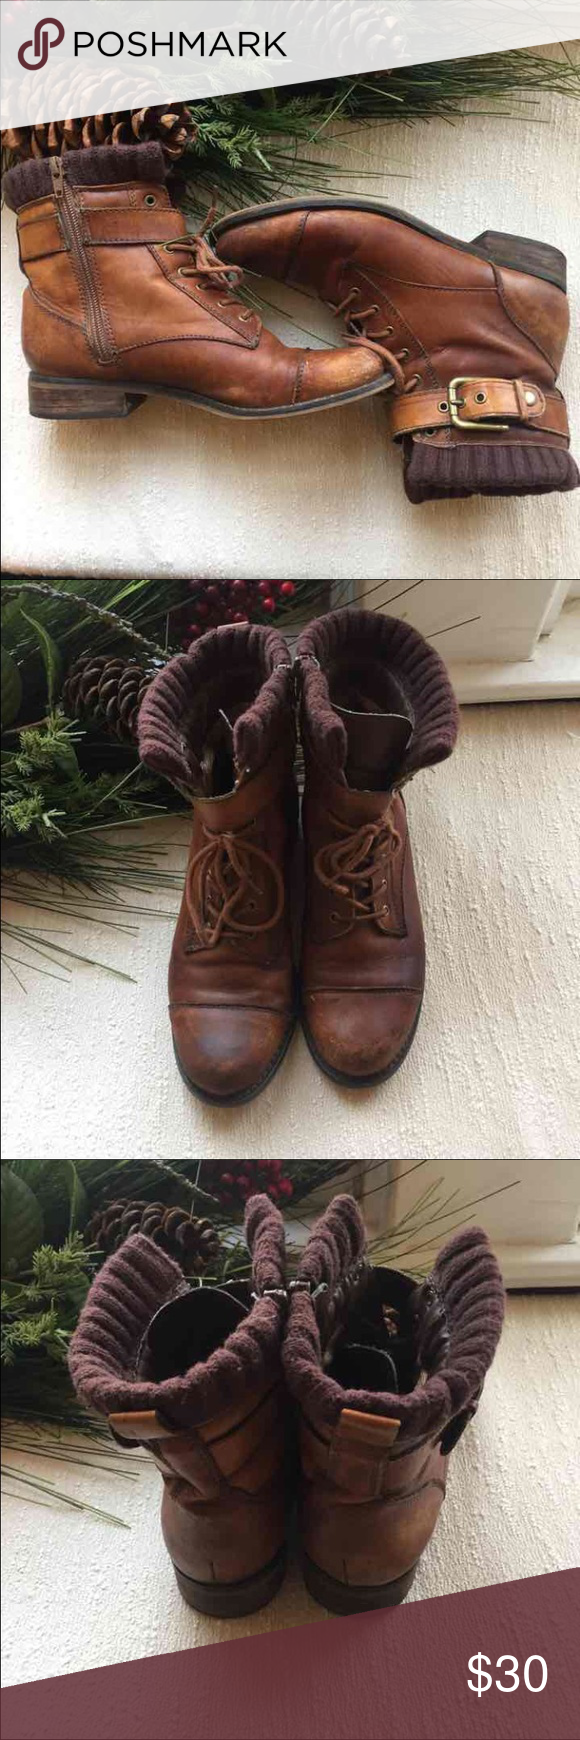 Arturo Chiang Boots Size 7 Arturo Chiang boots. These are made of leather and are in good used condition. Scuffs on the leather from use. Any distress adds to their vintage feel. Such a great look for Christmas. Arturo Chiang Shoes Lace Up Boots